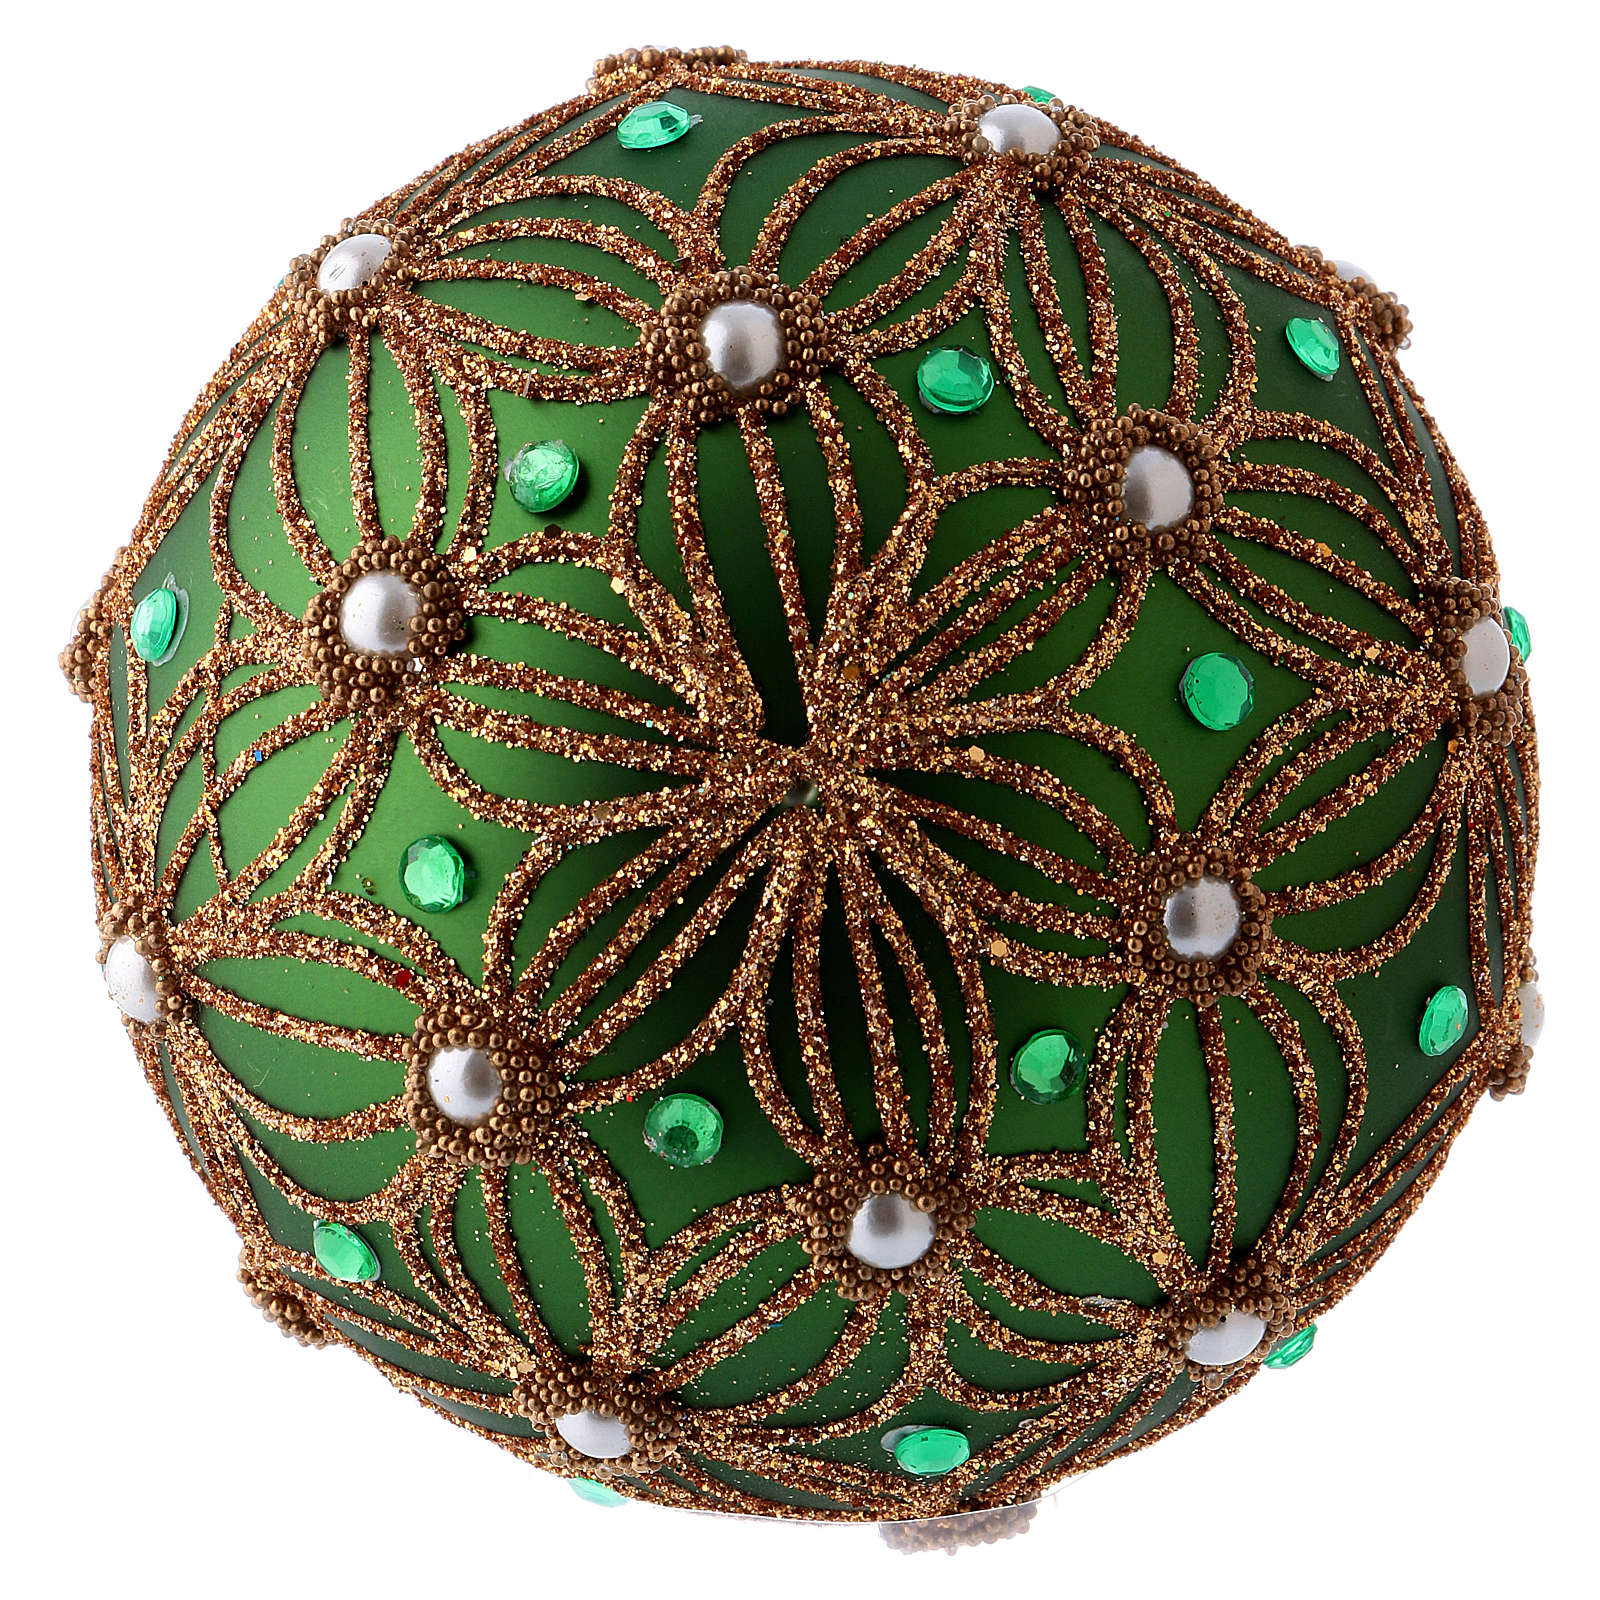 Christmas ball 80 mm in green blown glass with white and green beads 4